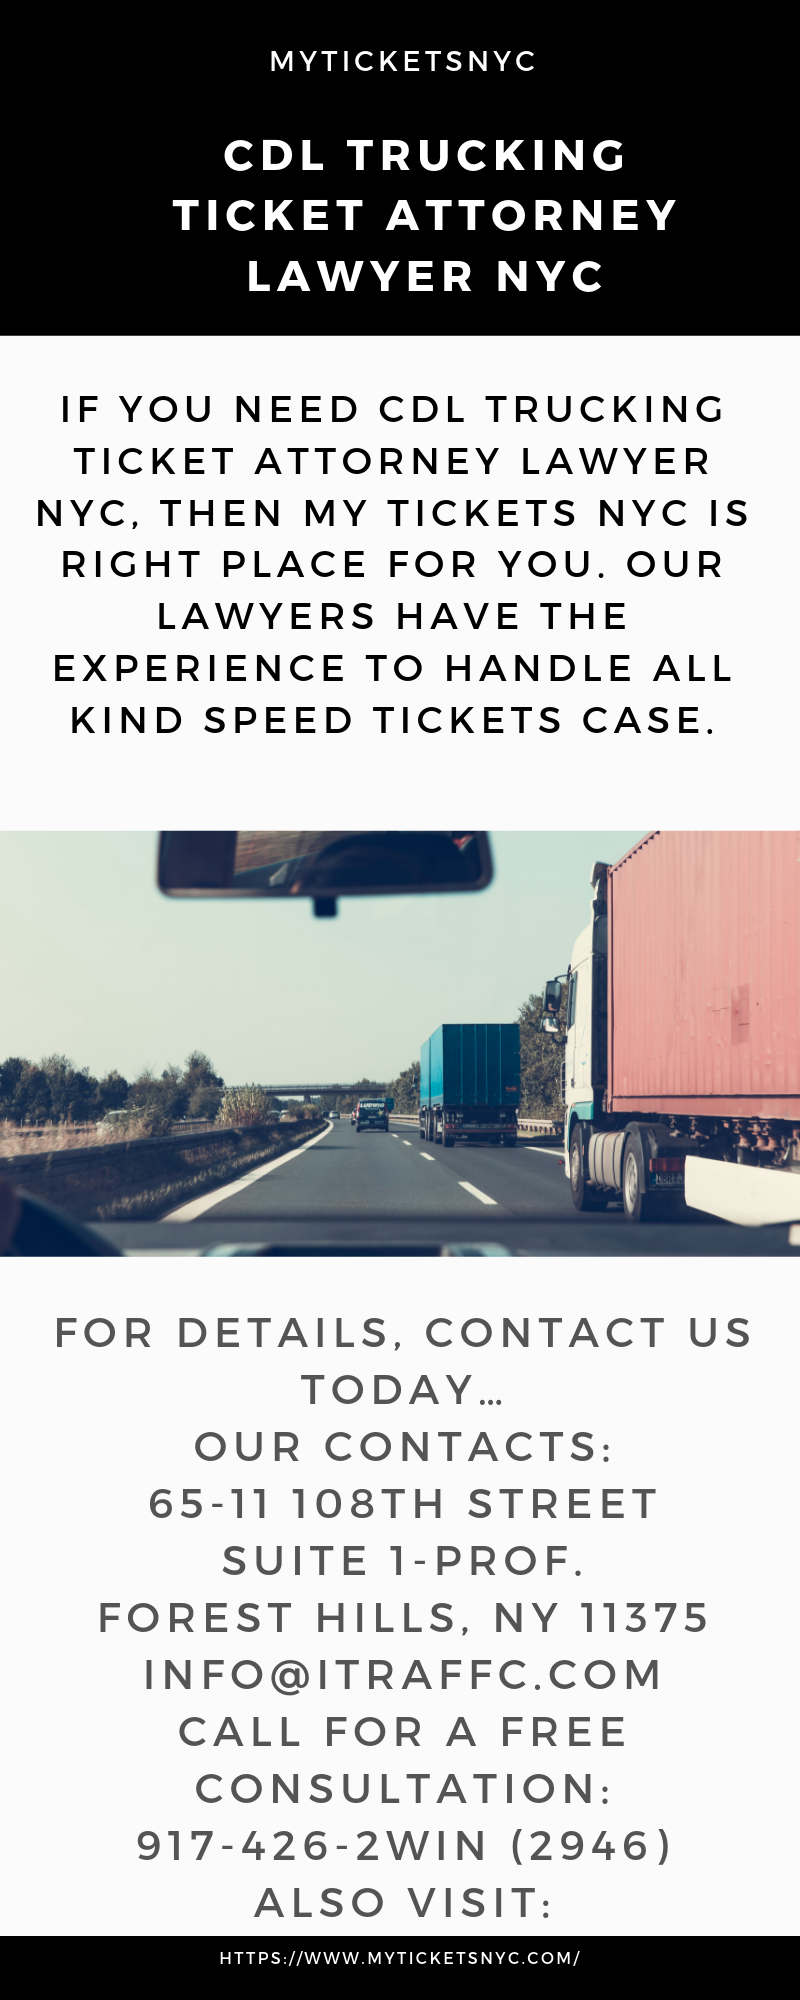 Traffic Ticket Nyc >> Pin By Myticketsnyc On Cdl Trucking Ticket Attorney Lawyer